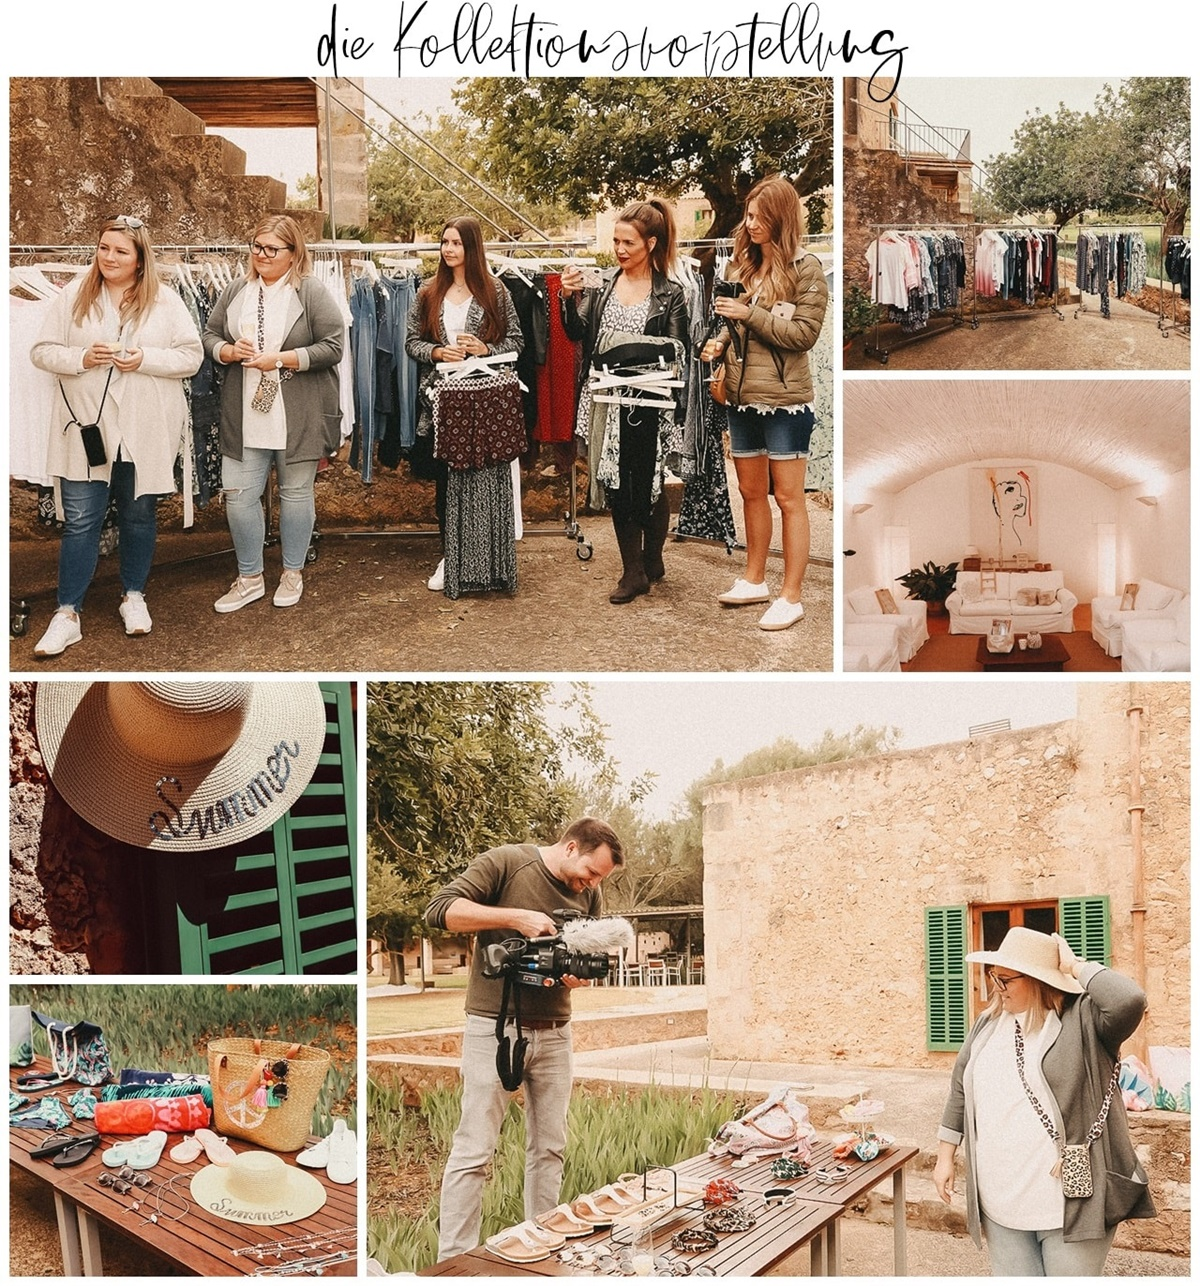 elabonbonella ernstings family blogger event mallorca 2019 01